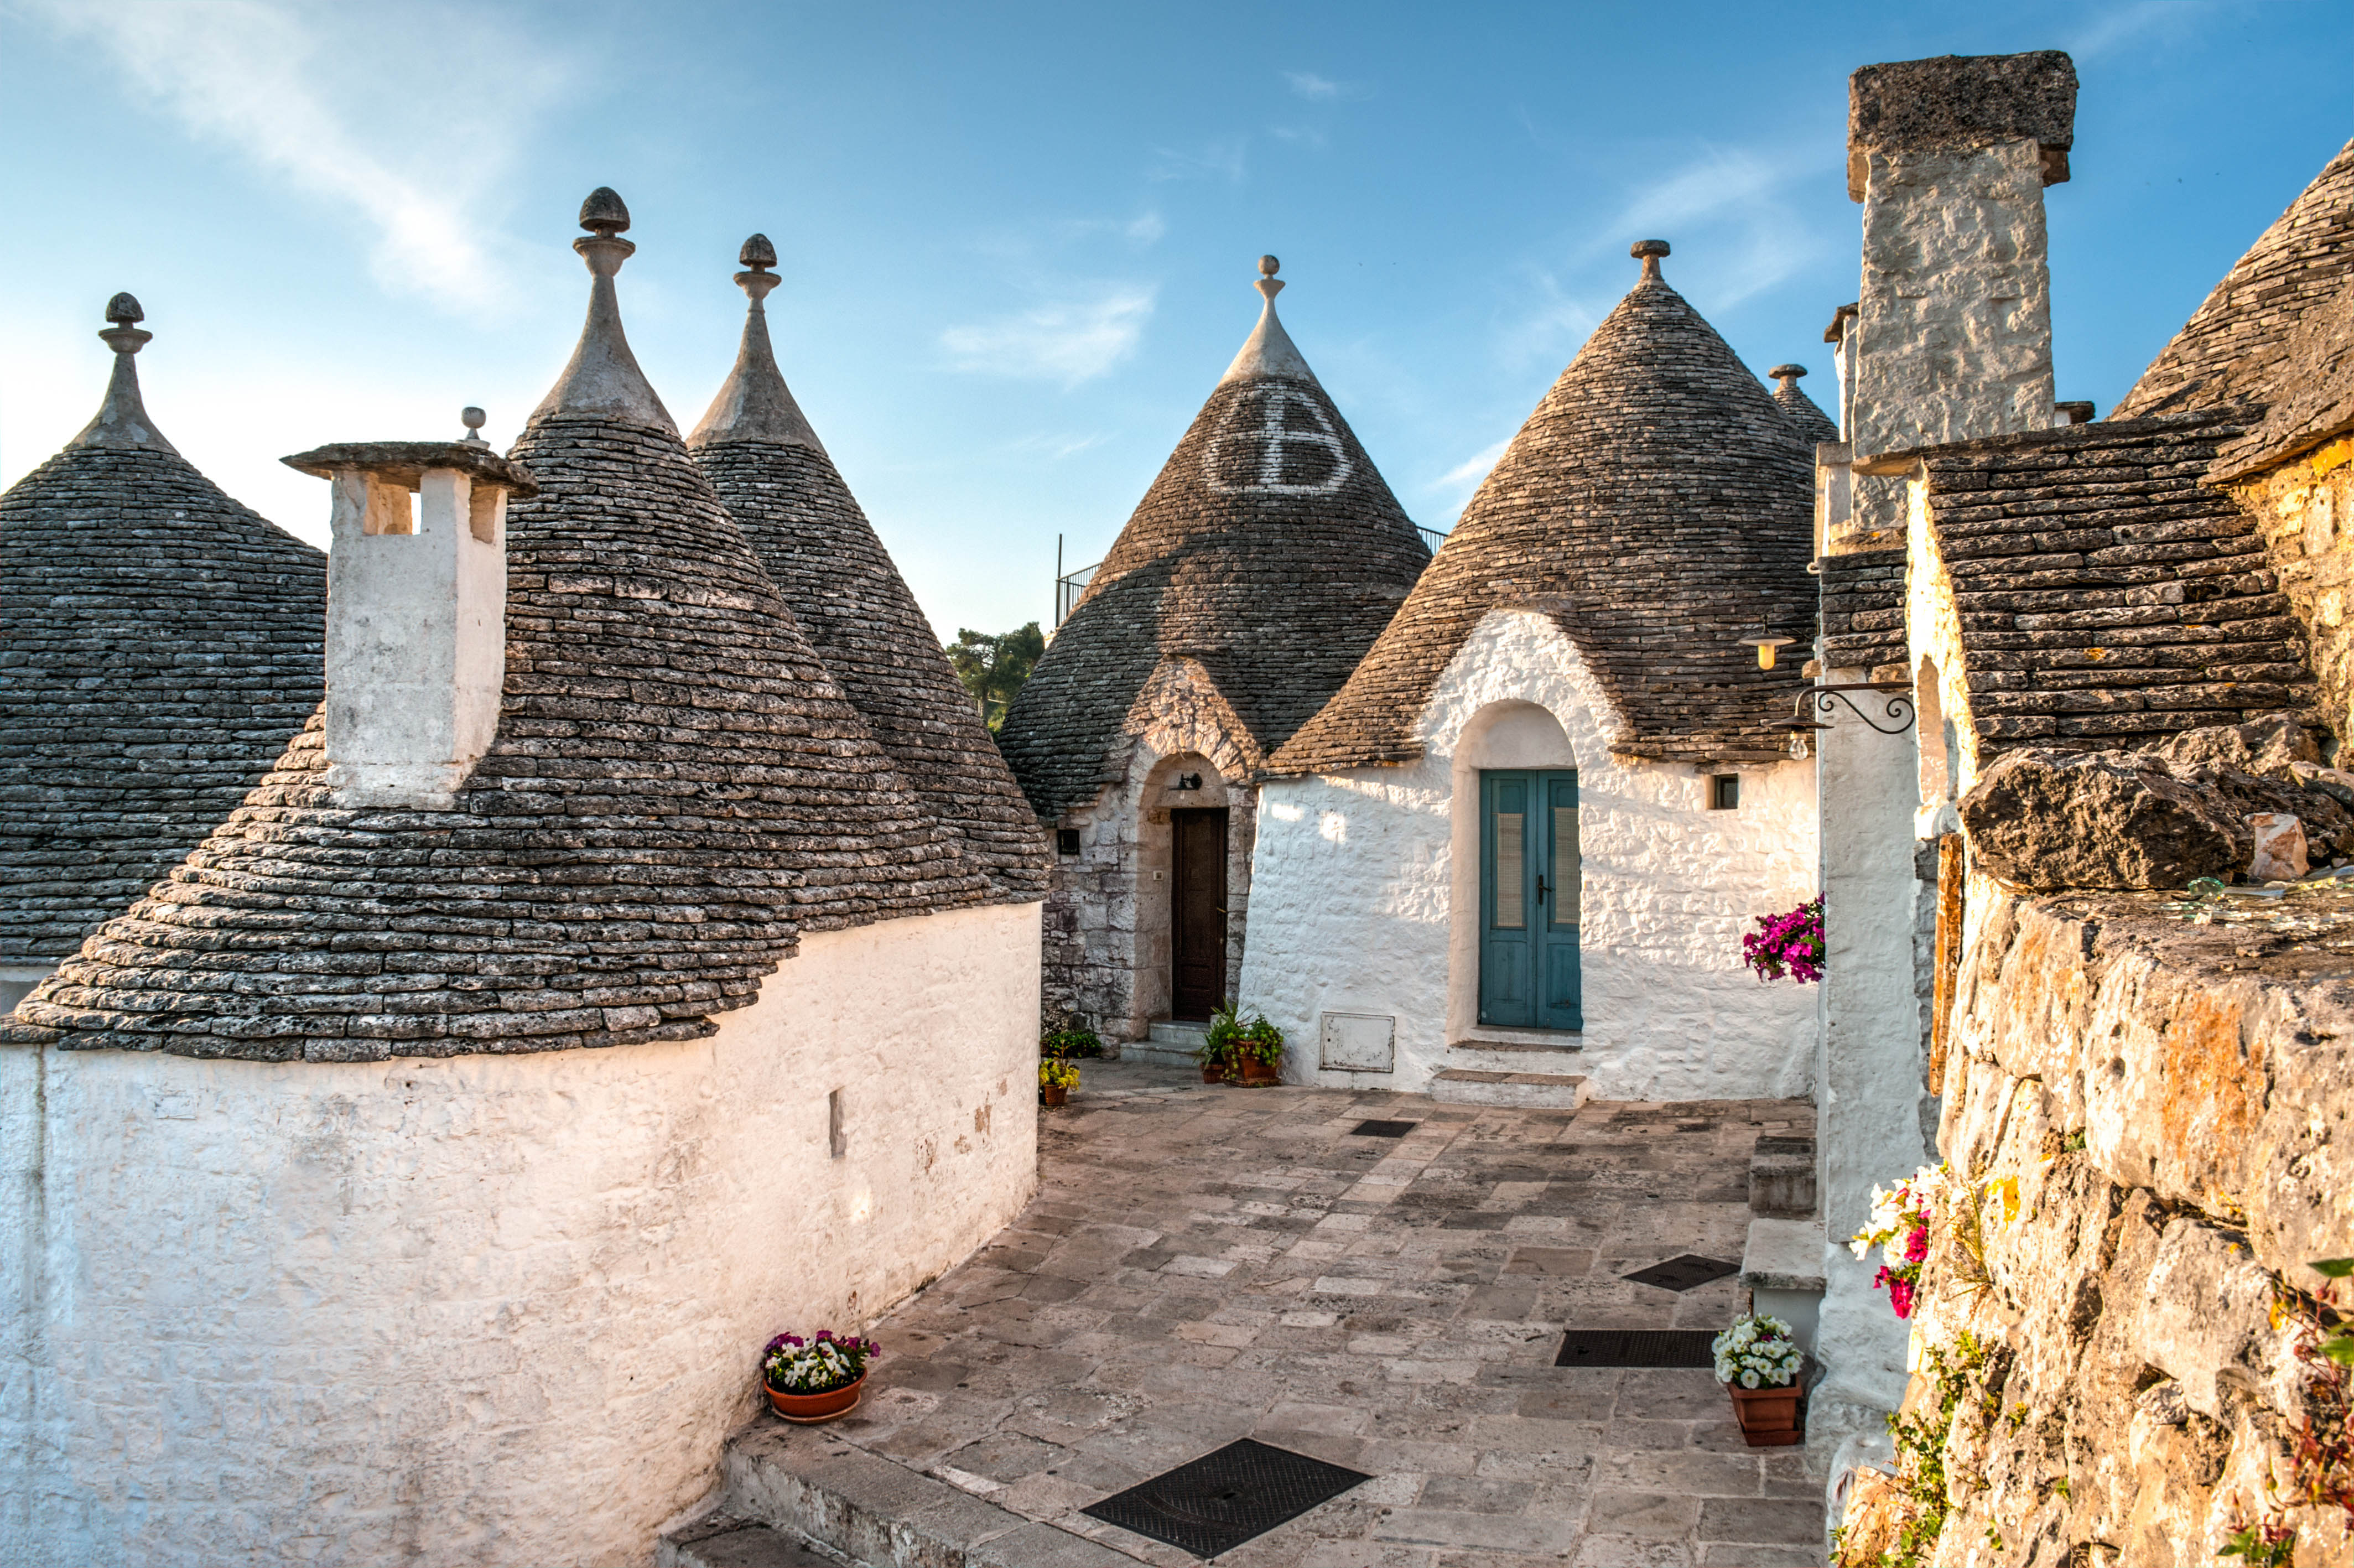 View of Trulli houses in Alberobello old town, Italy